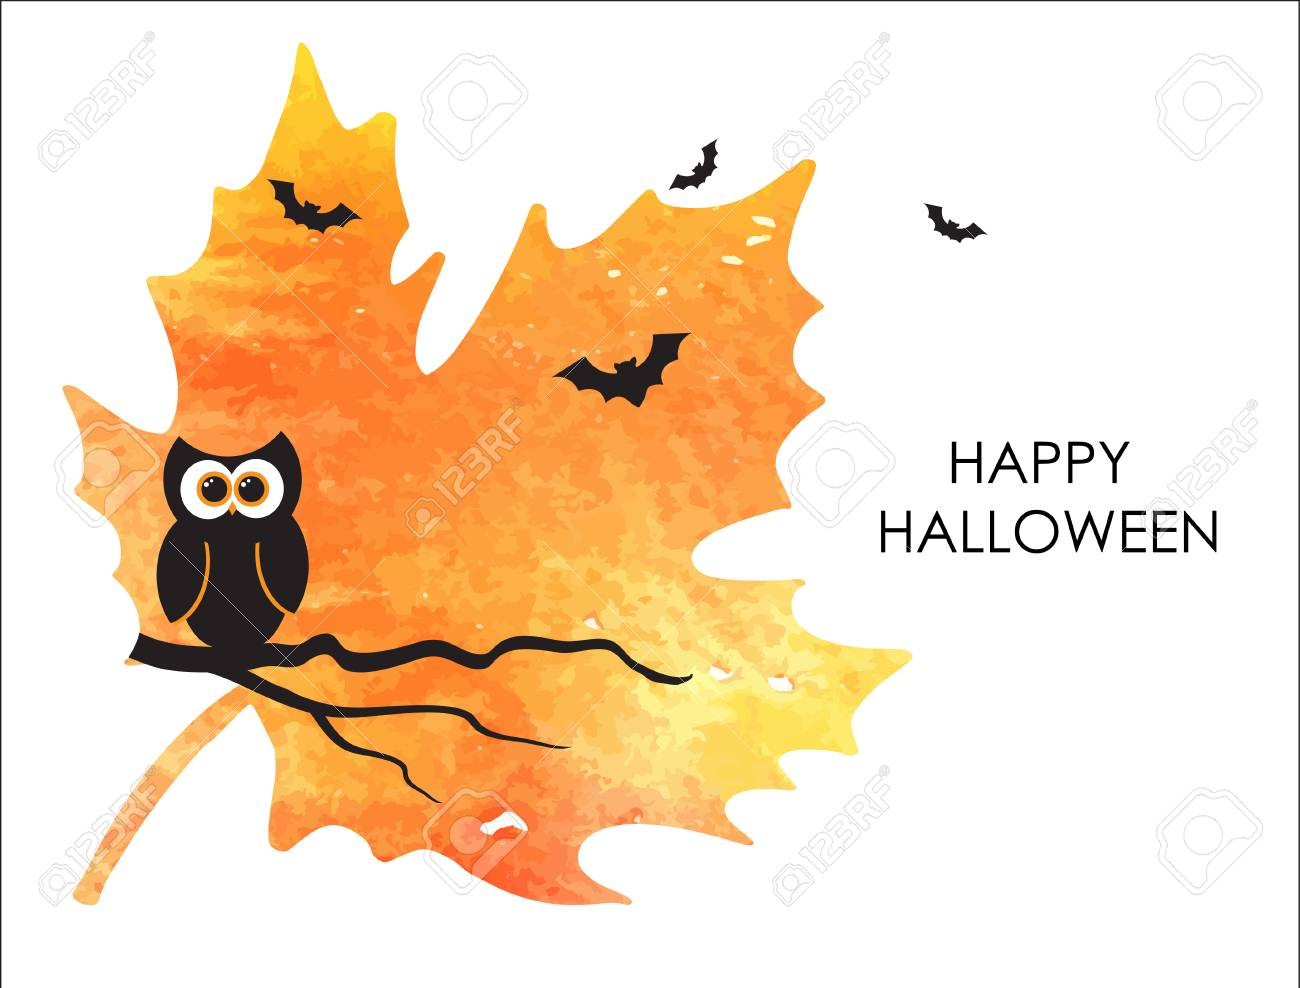 Cute Halloween Banner Or Card Design Small Owl And Bats On Watercolor Painted Orange Maple